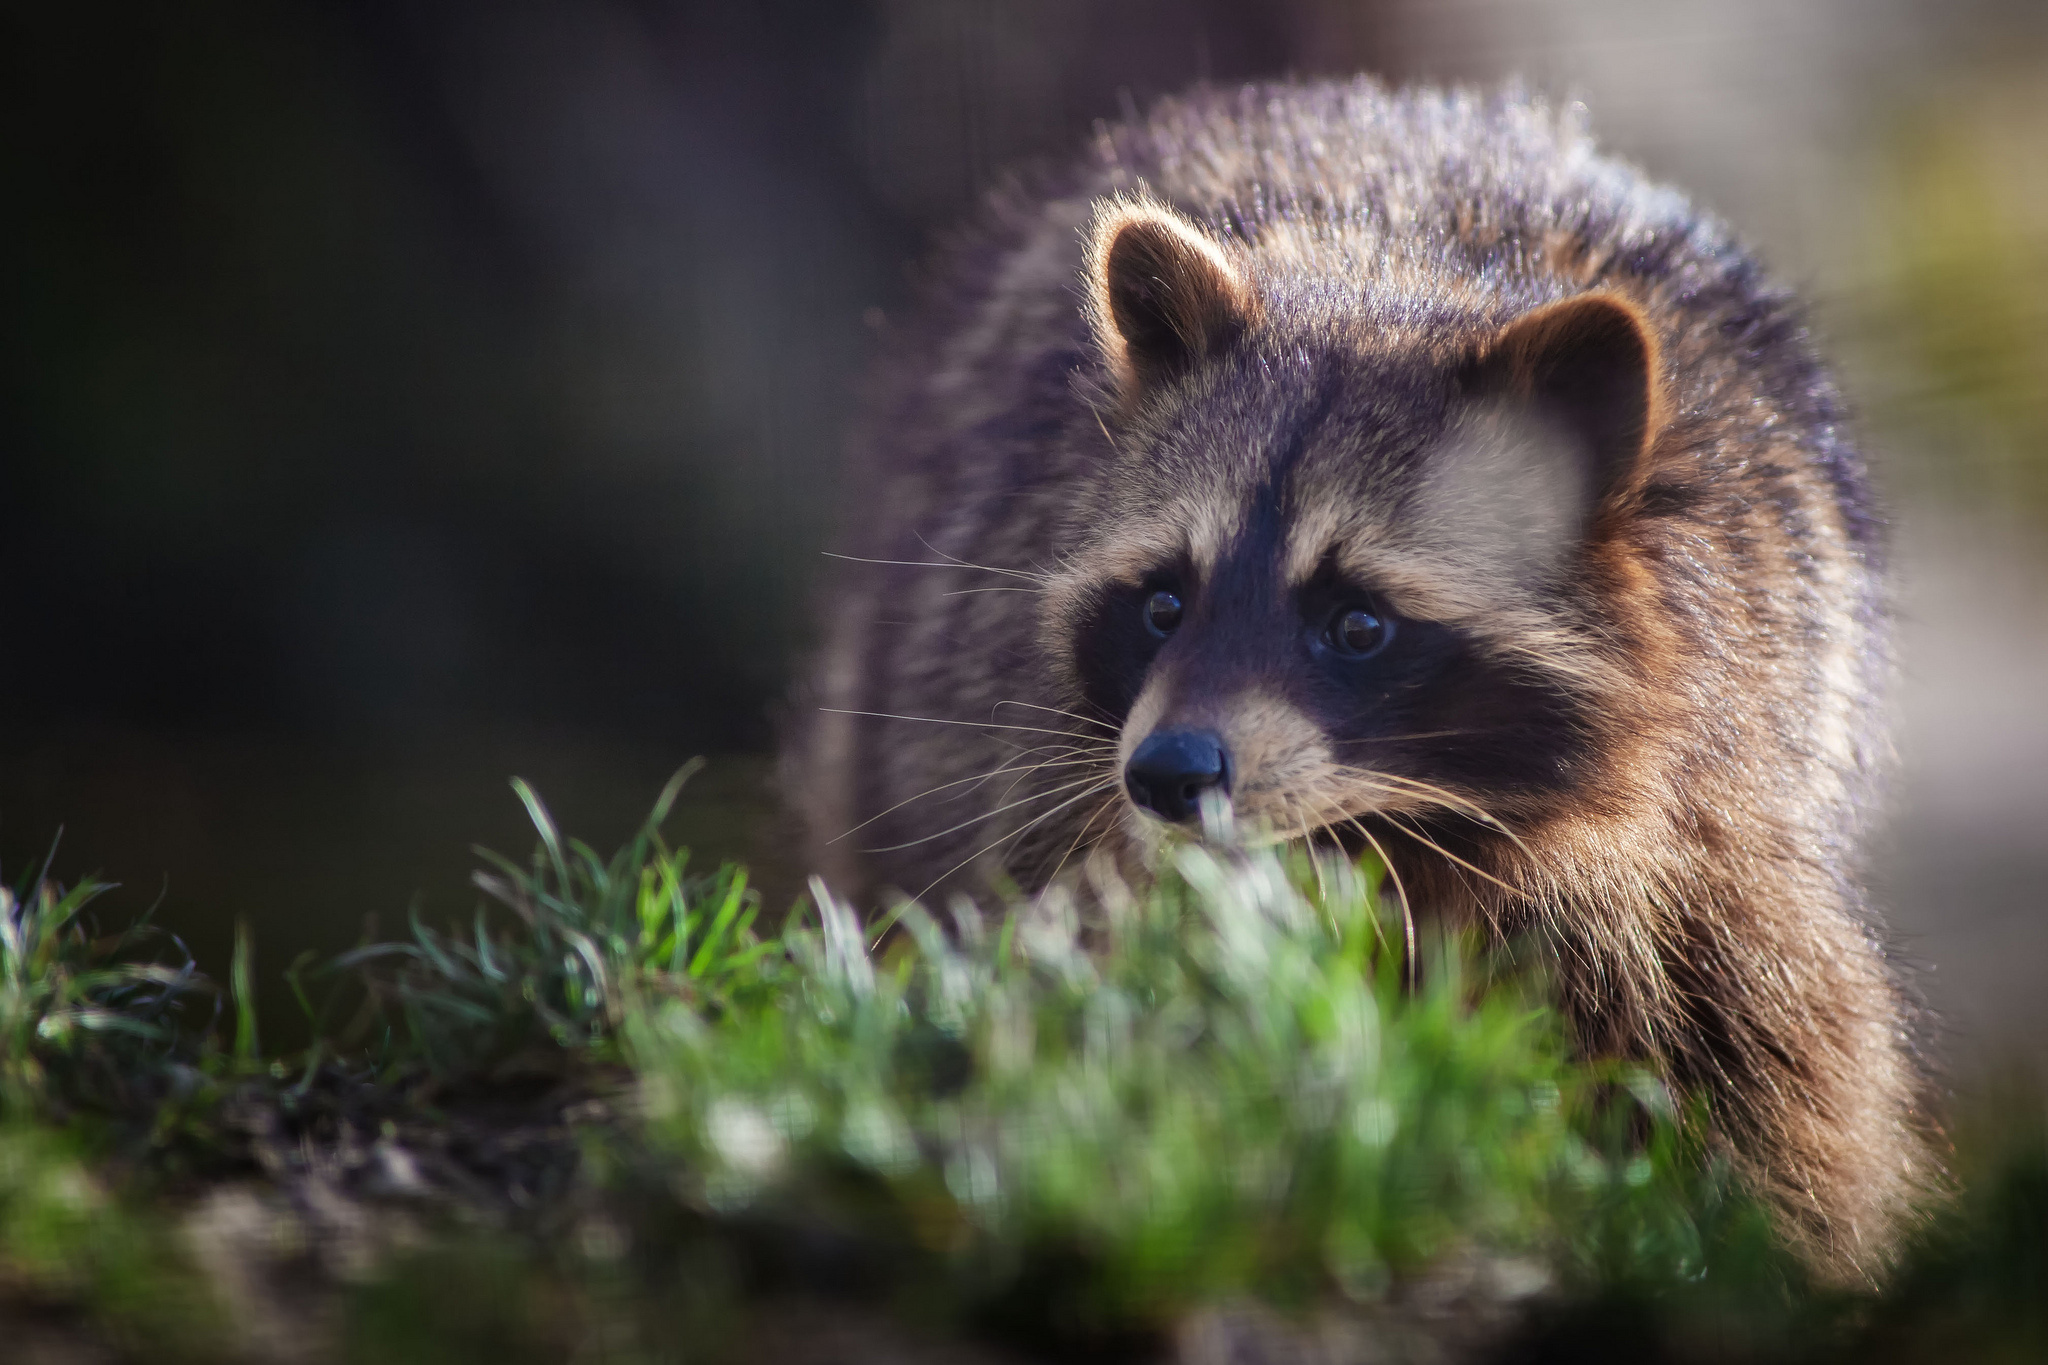 Cool Wallpapers For Fall Raccoon Hd Wallpaper Background Image 2048x1365 Id